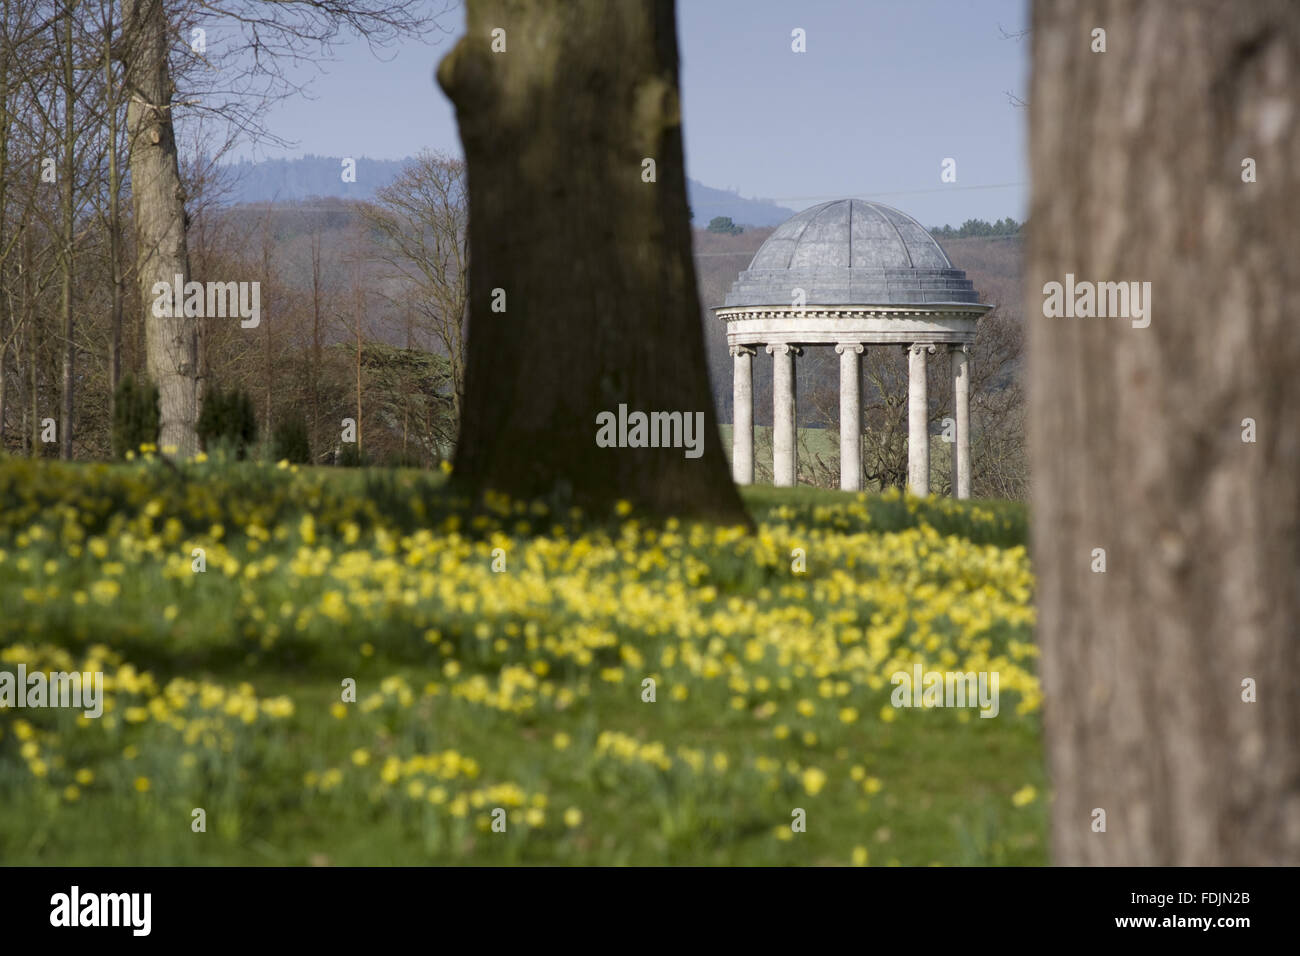 The rotunda built in 1766, and daffodils in the park at Petworth House, West Sussex. The Ionic rotunda may have been designed by Matthew Brettingham probably inspired by Vanbrugh's rotundas. Stock Photo